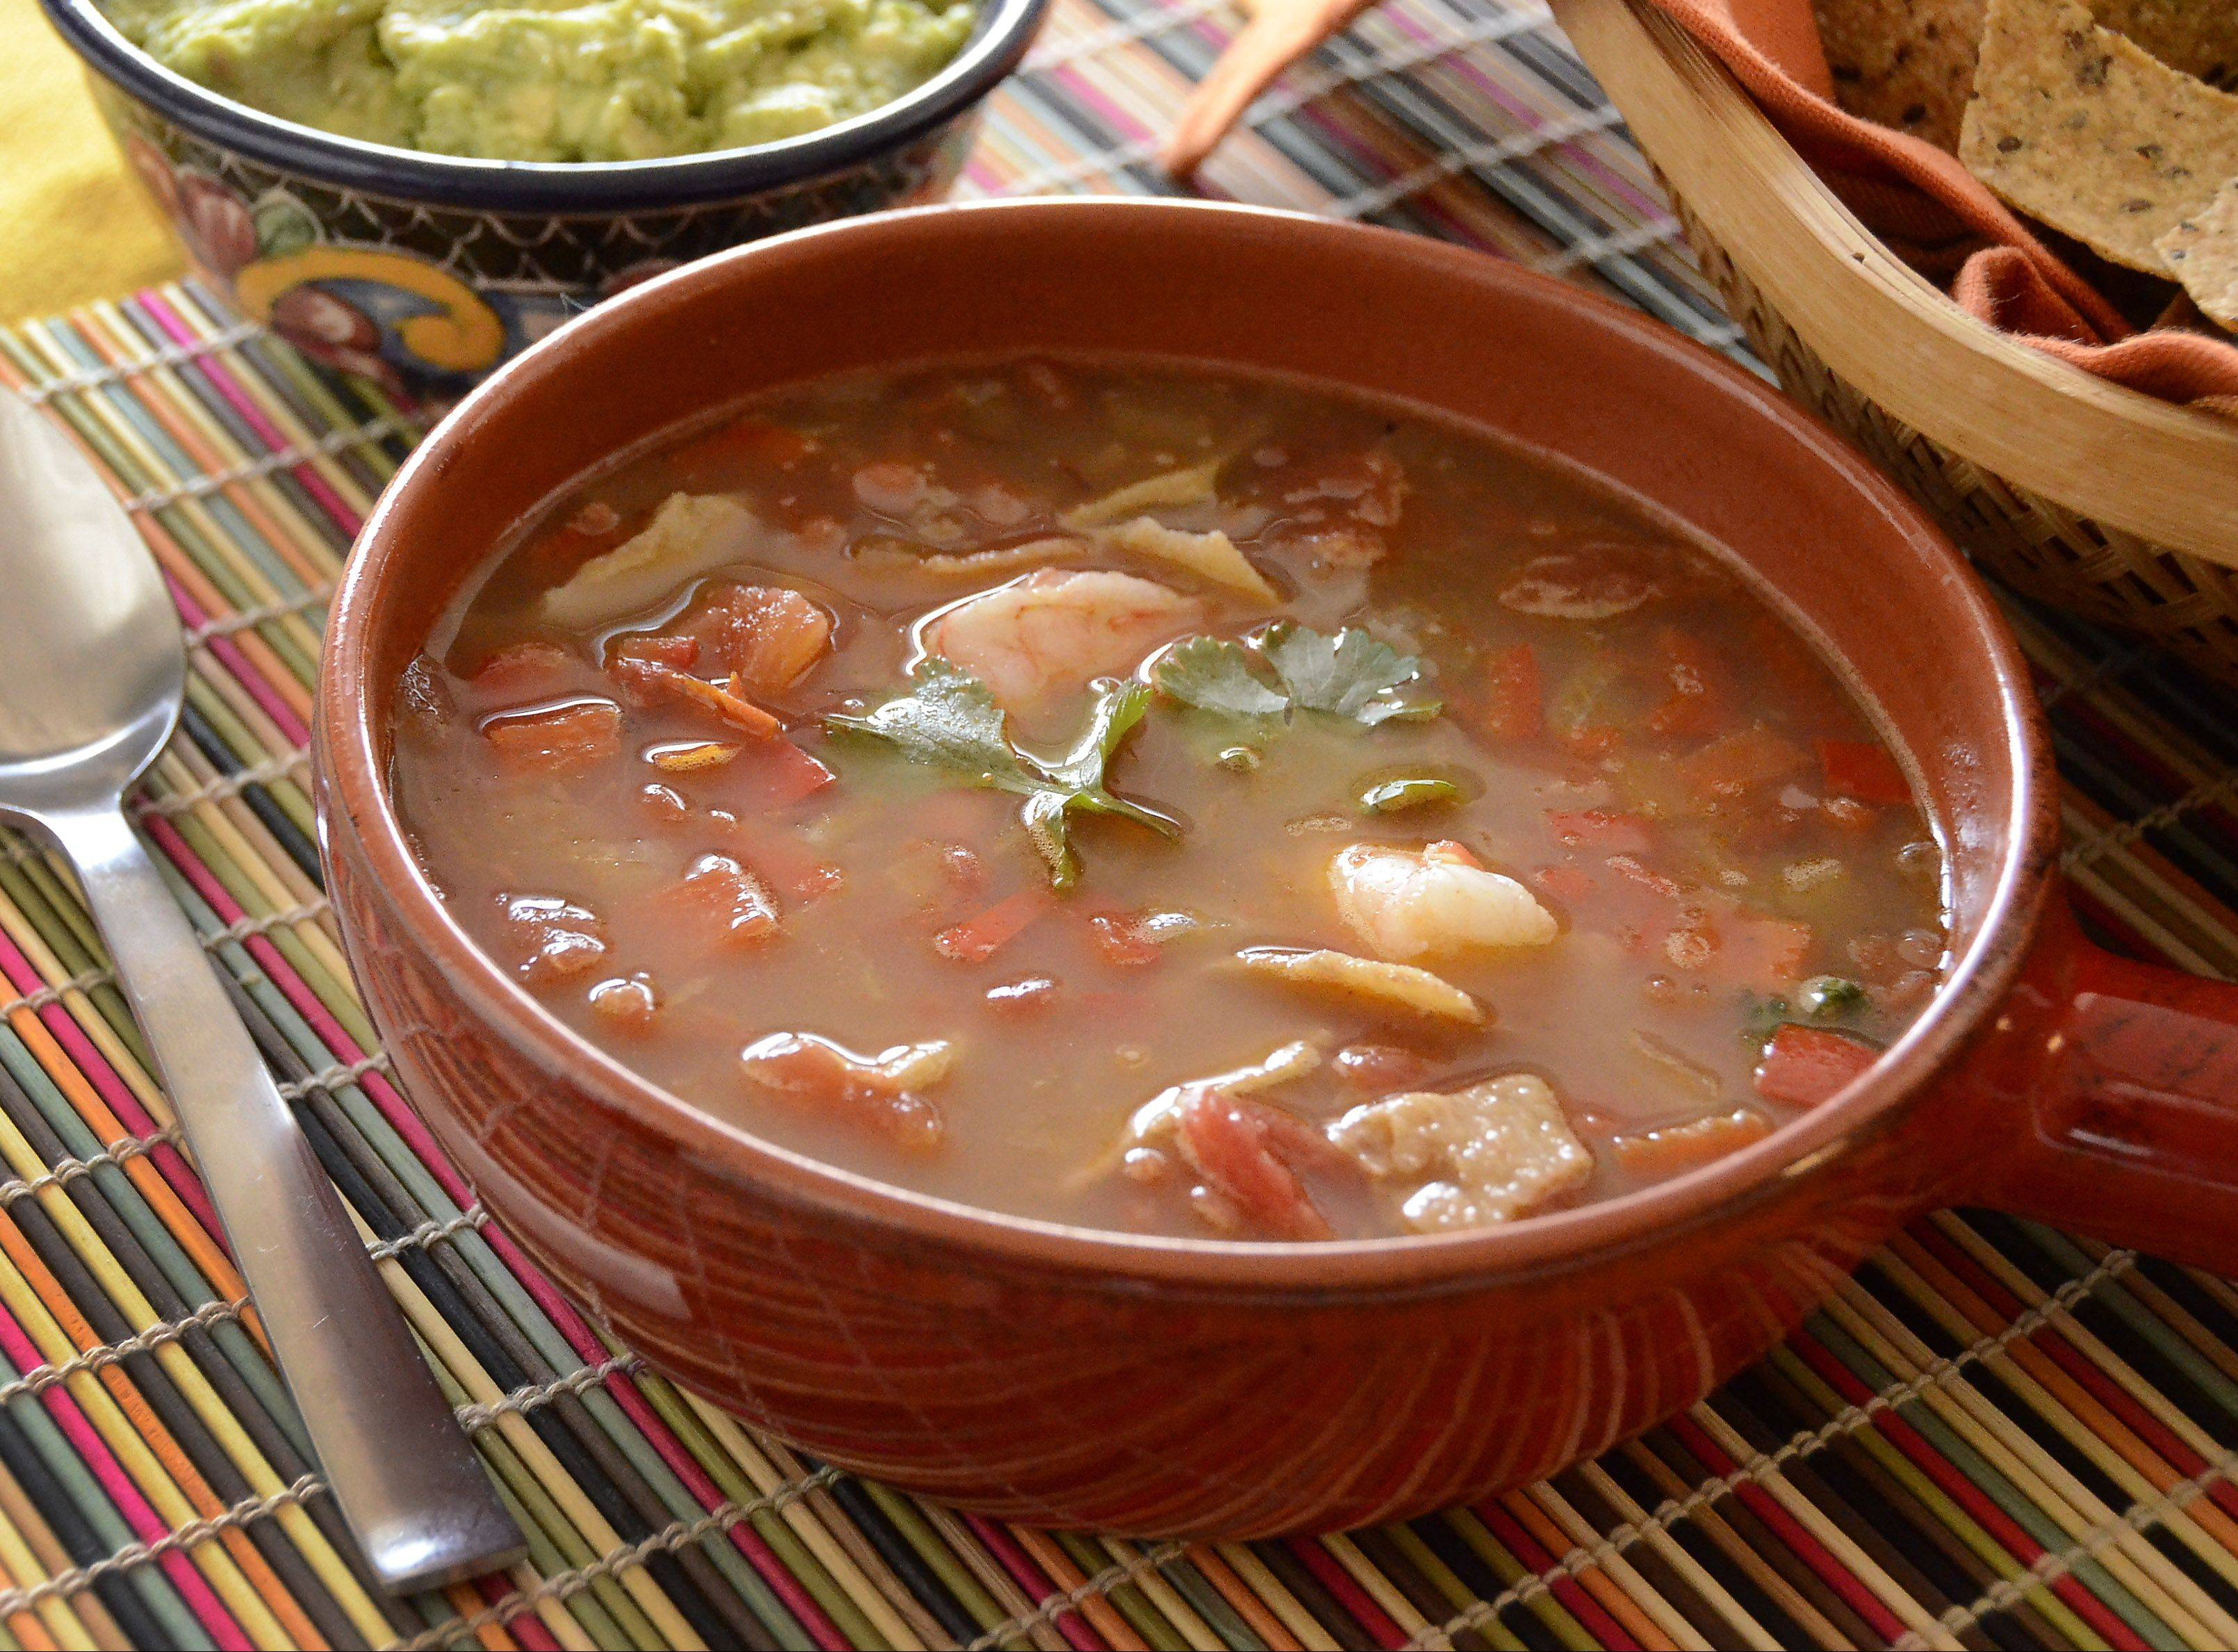 A bit of cocoa powder adds mole-like depth to shrimp-studded tortilla soup.